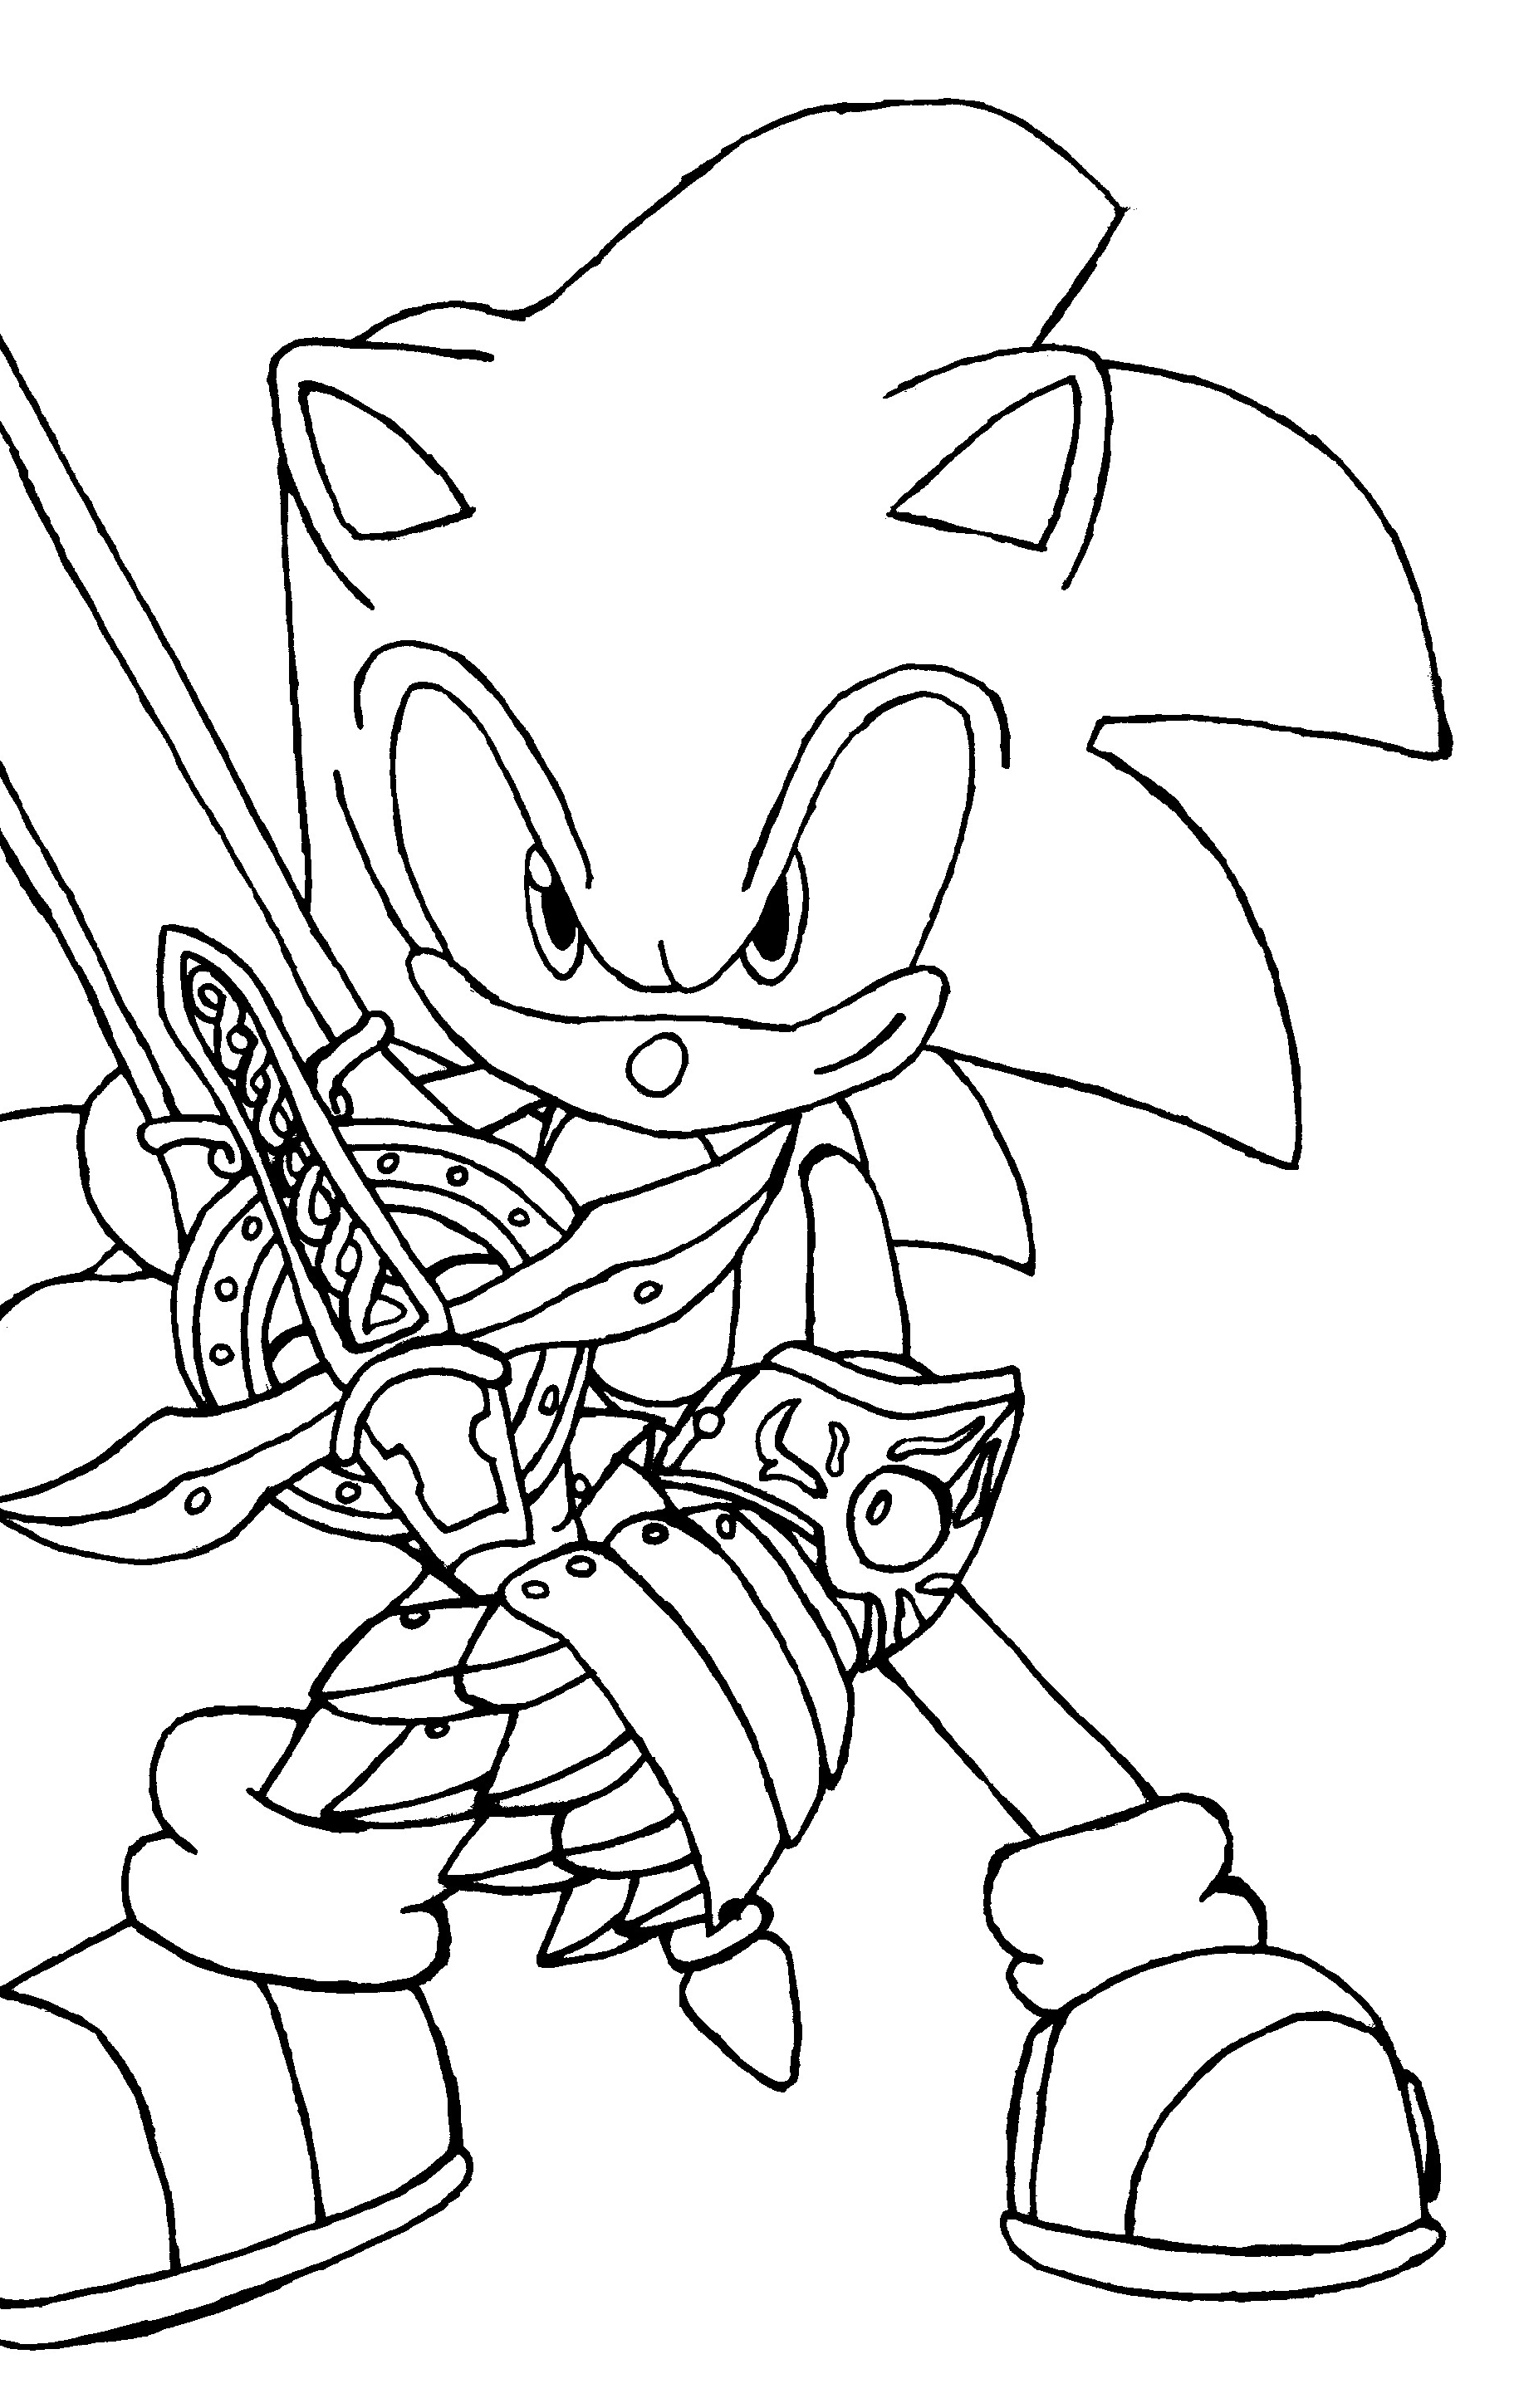 sonic printable super sonic coloring pages to download and print for free sonic printable